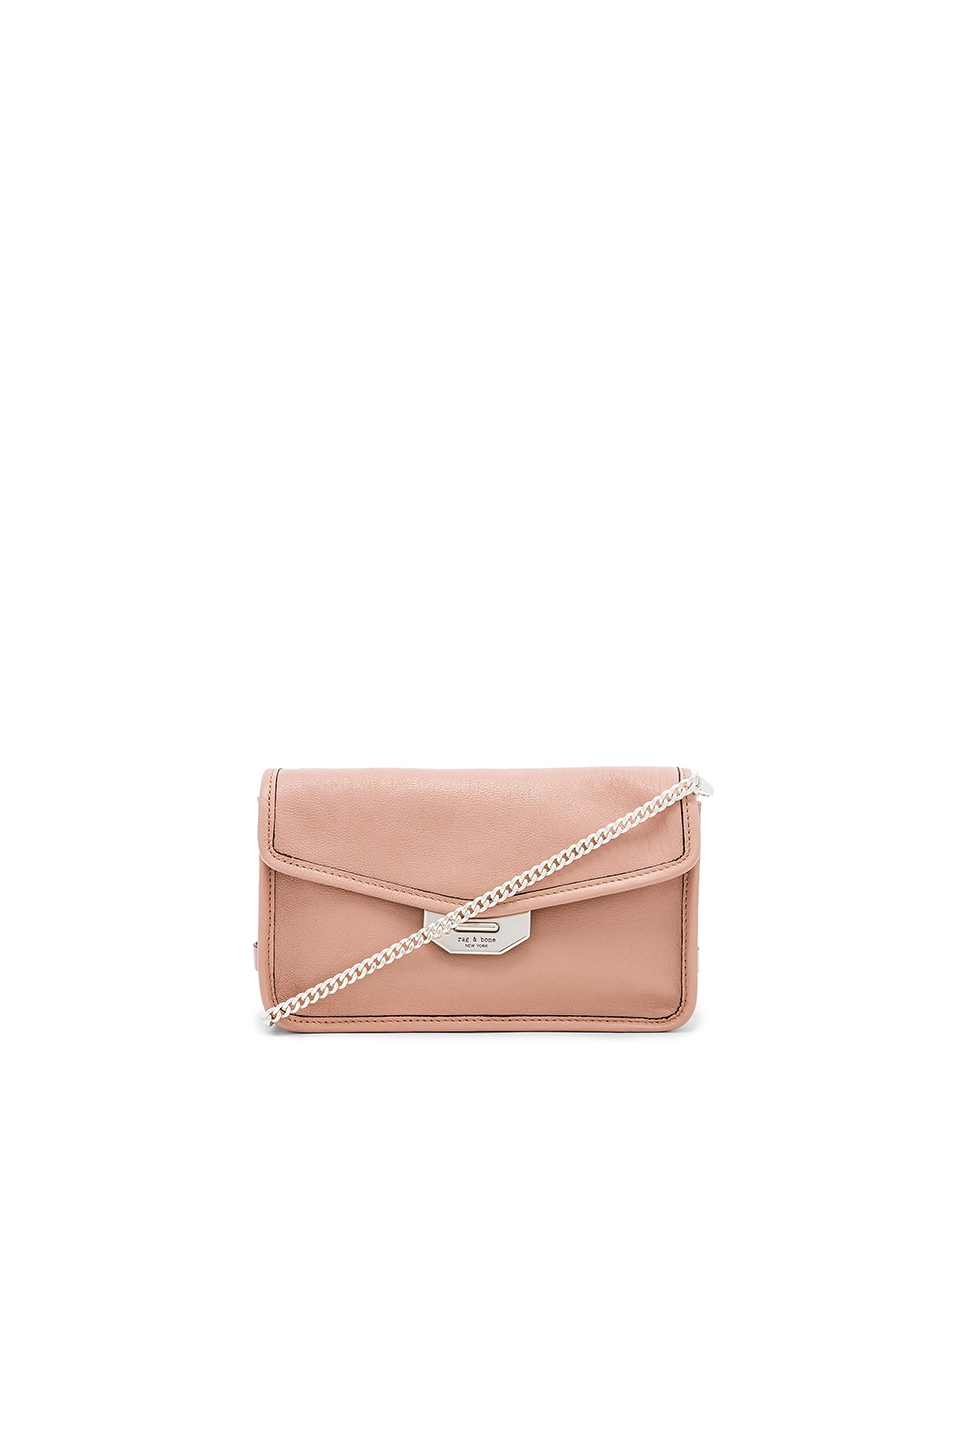 Rag & Bone Field Clutch Bag in Nude